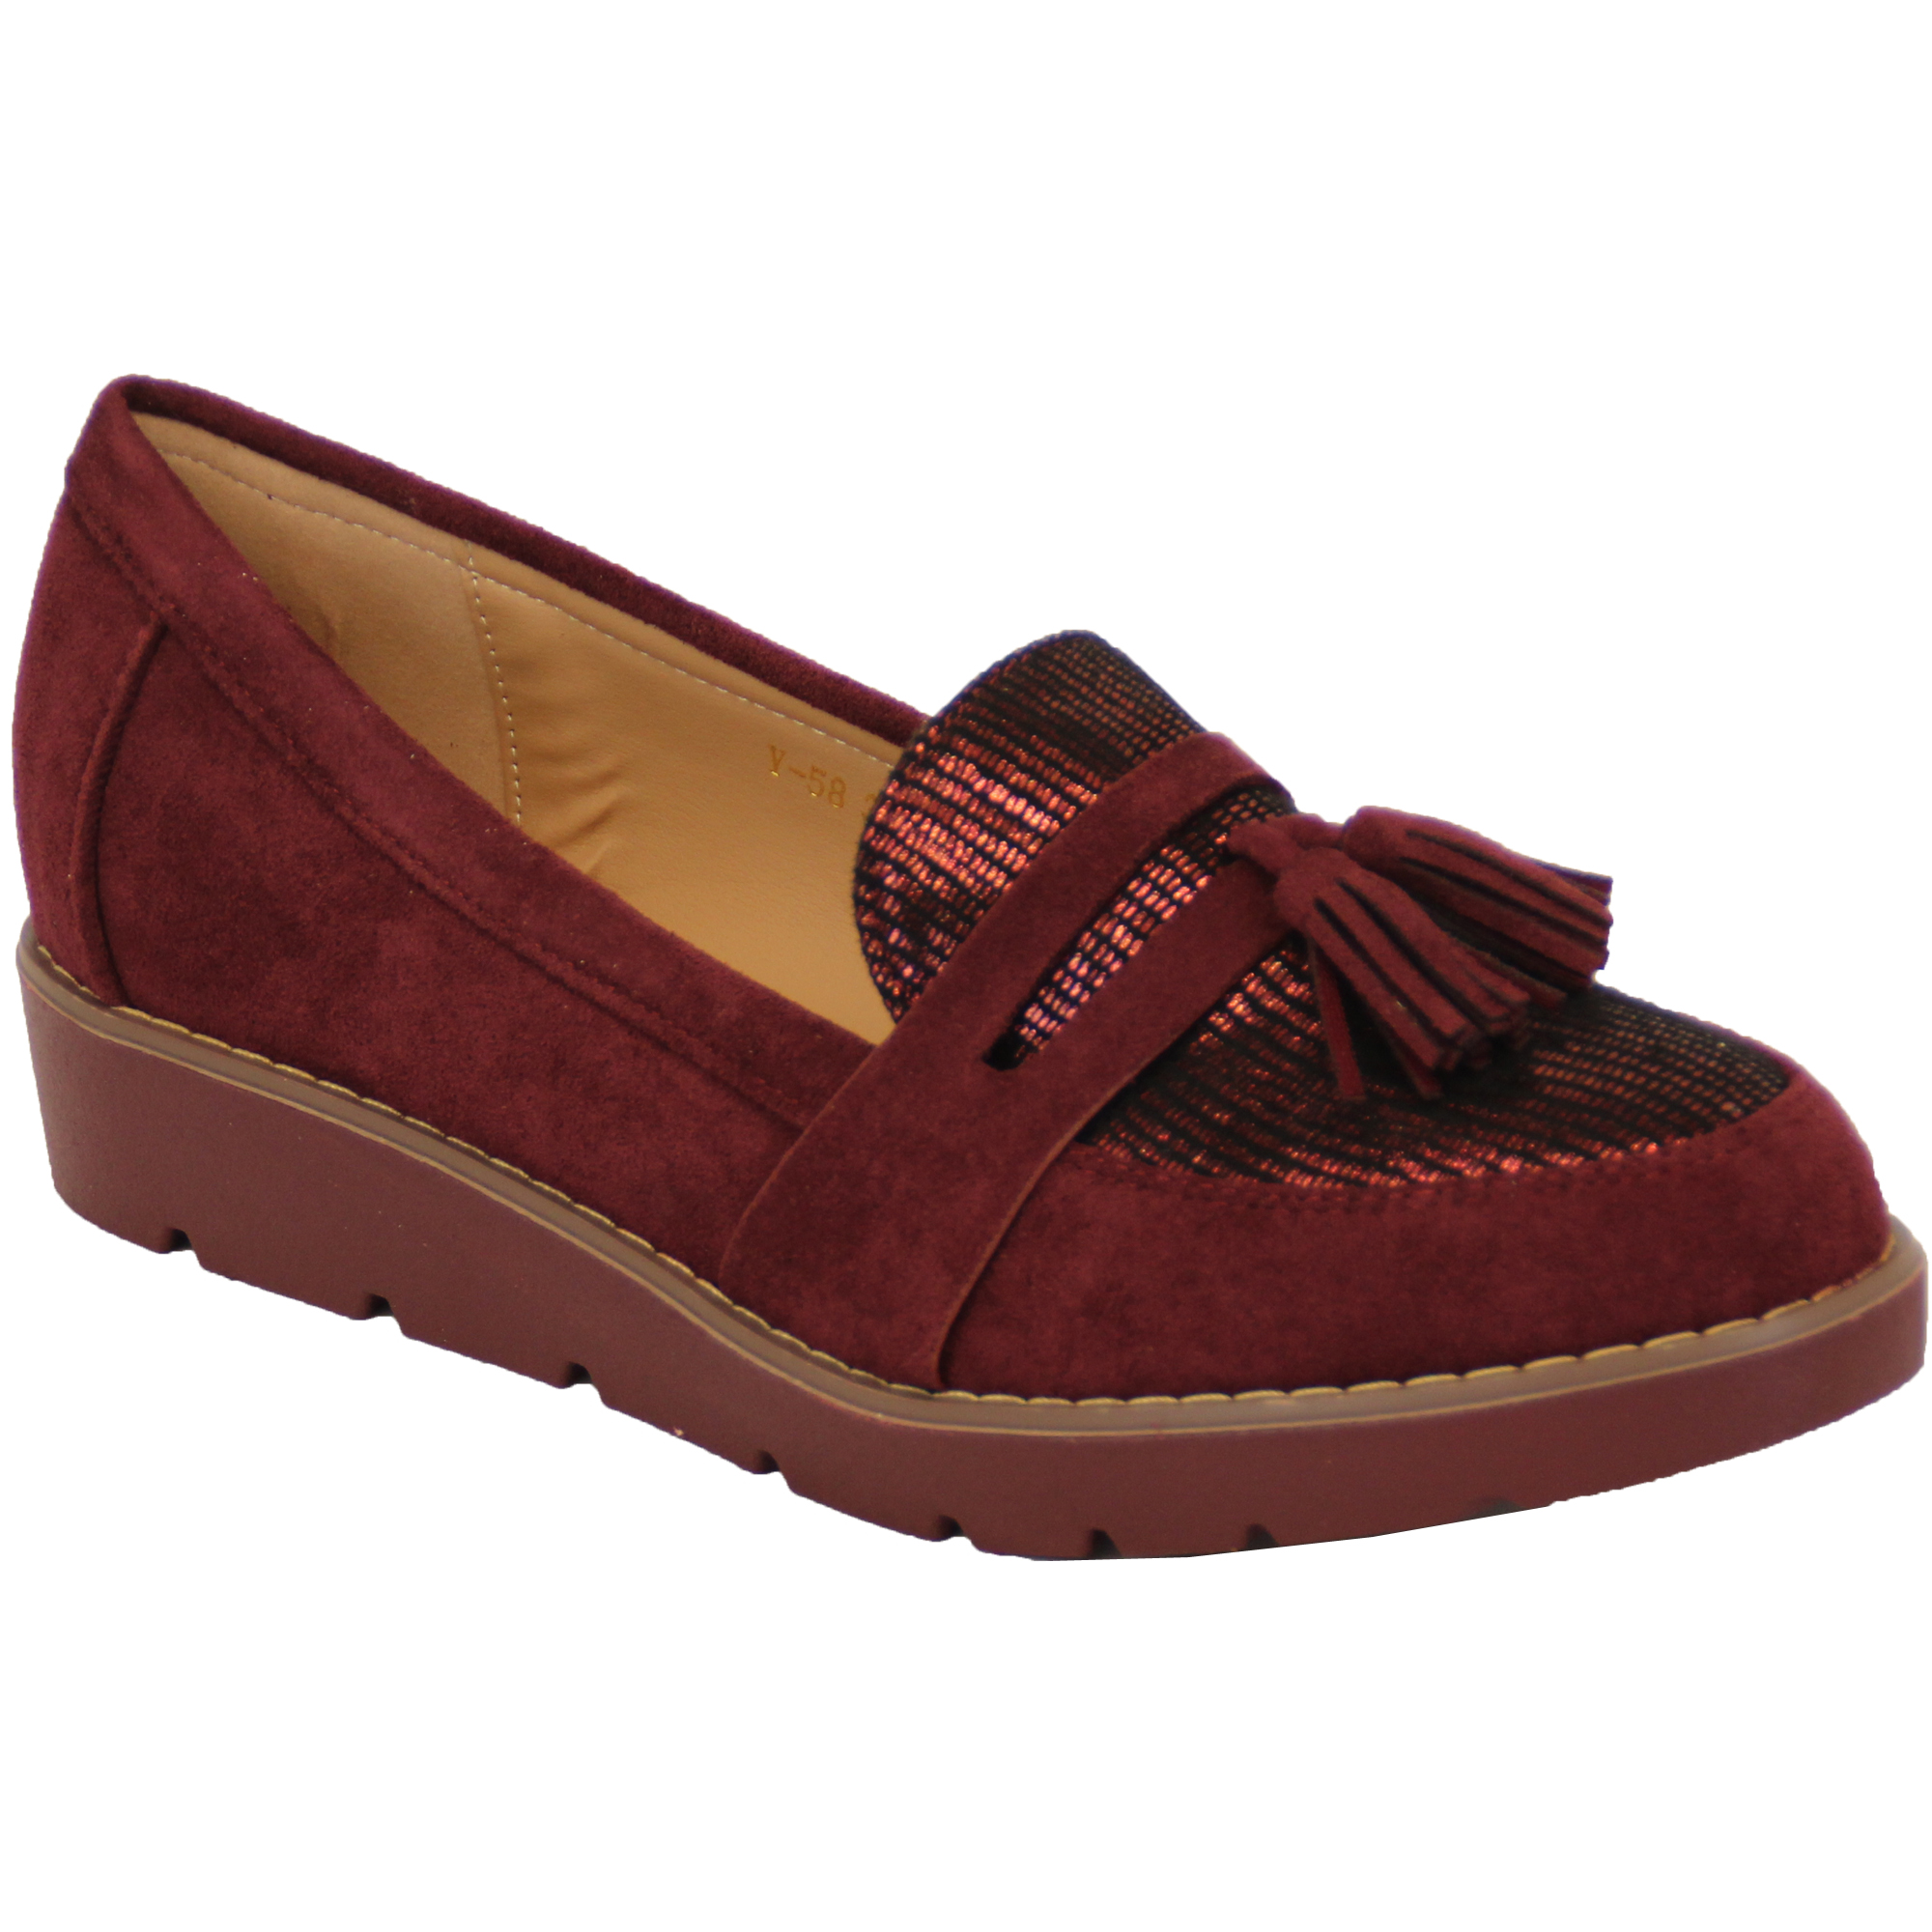 Womens Wedge Loafer Shoes